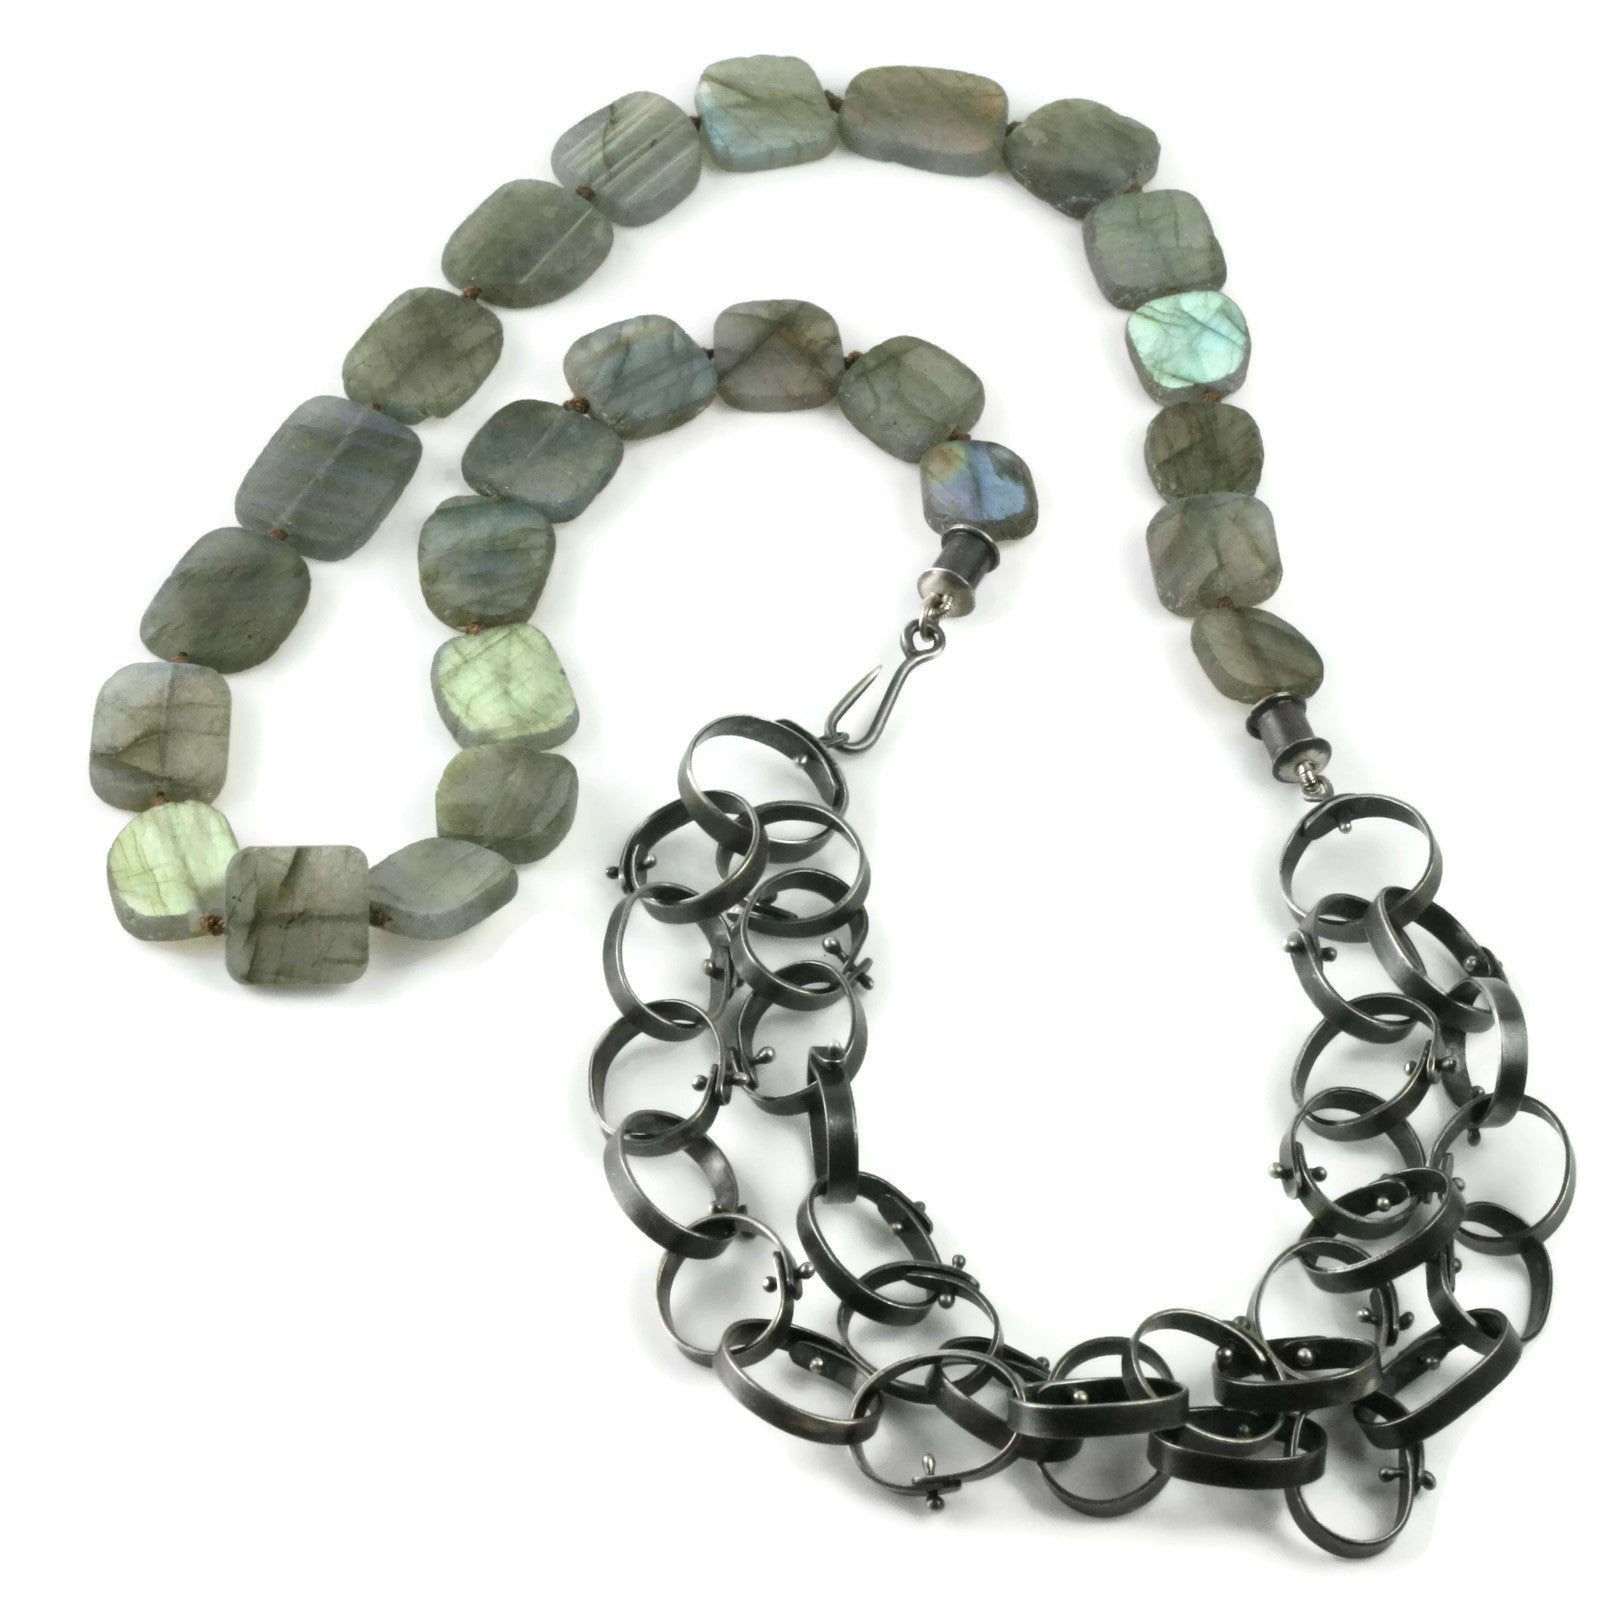 Labradorite Riveted Chain Necklace